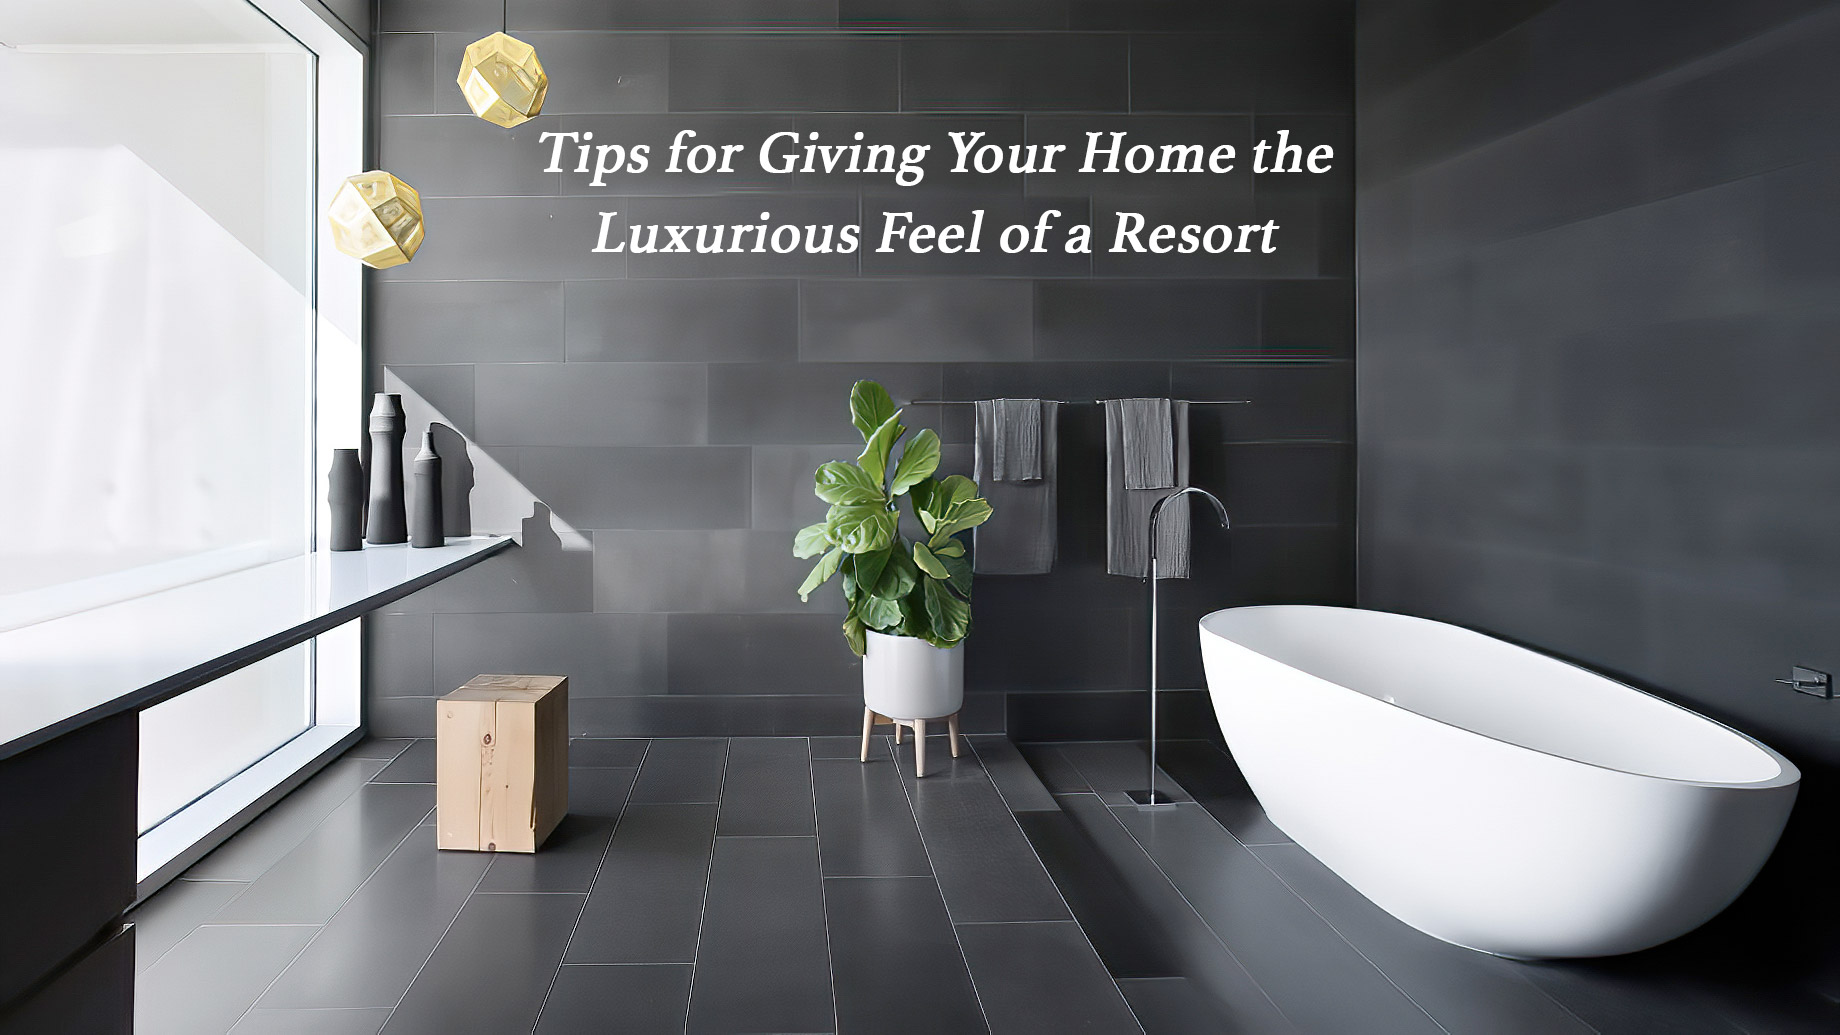 Tips for Giving Your Home the Luxurious Feel of a Resort